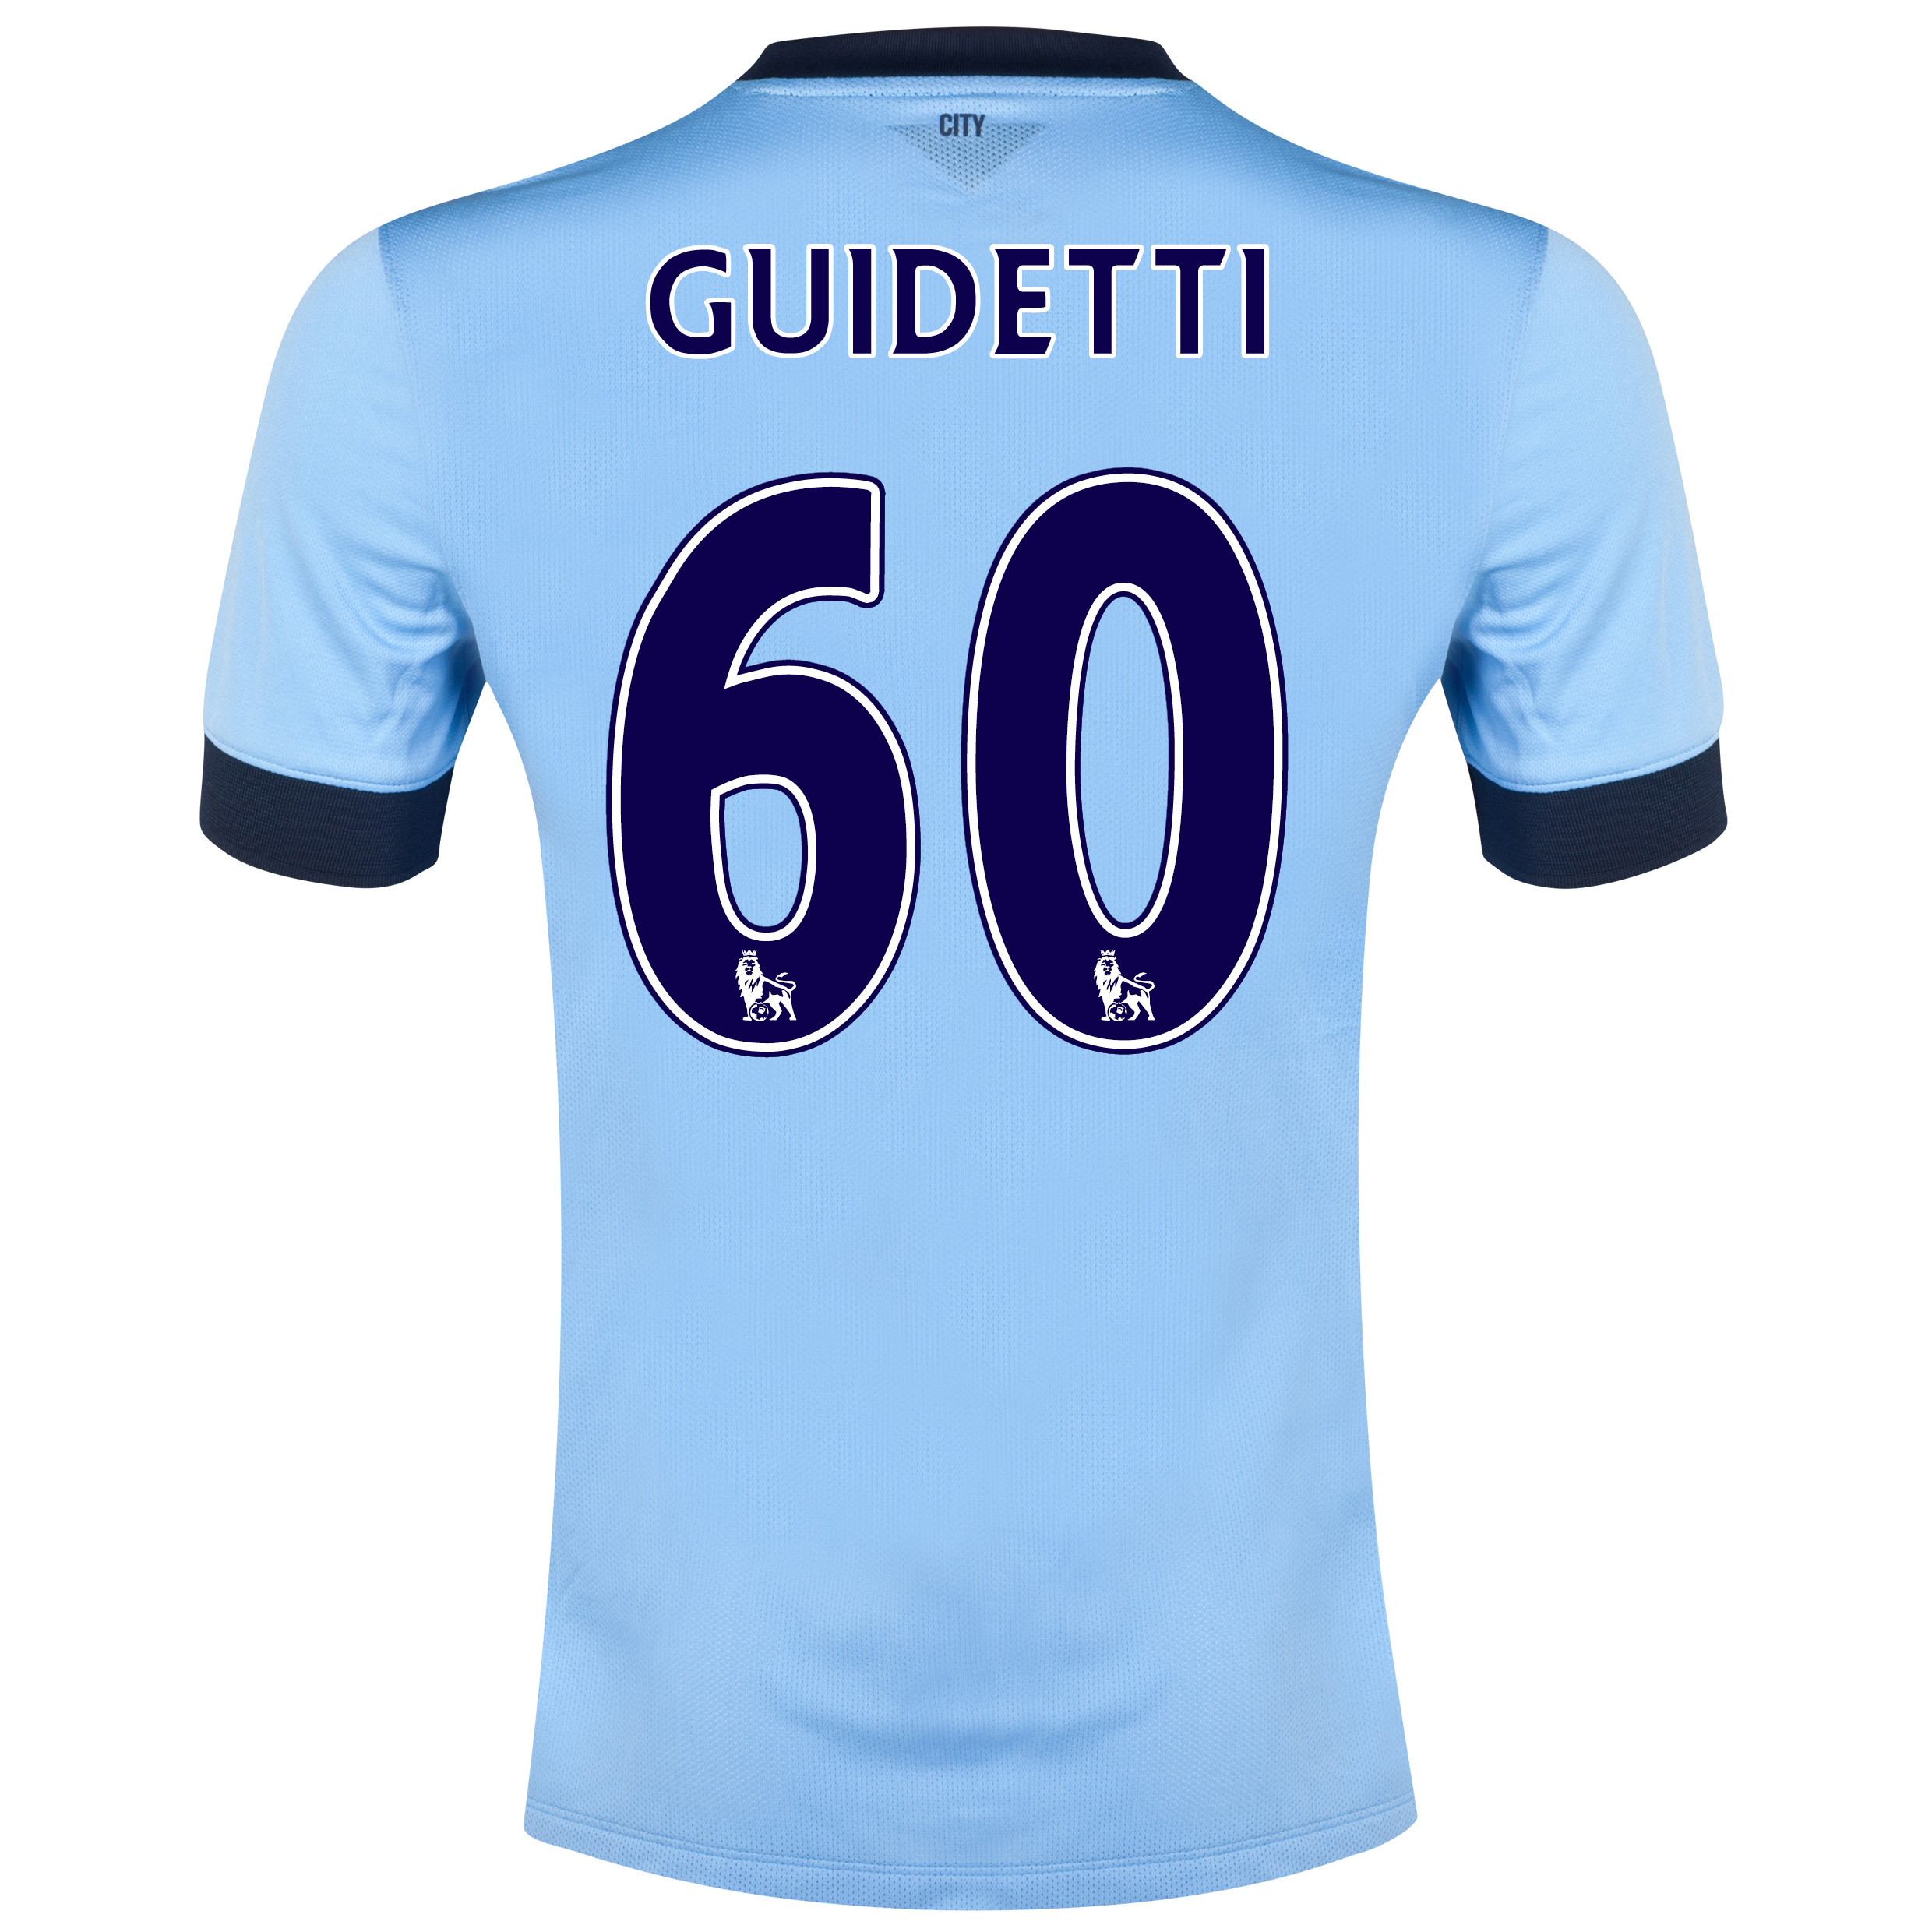 Manchester City Home Shirt 2014/15 Sky Blue with Guidetti 60 printing